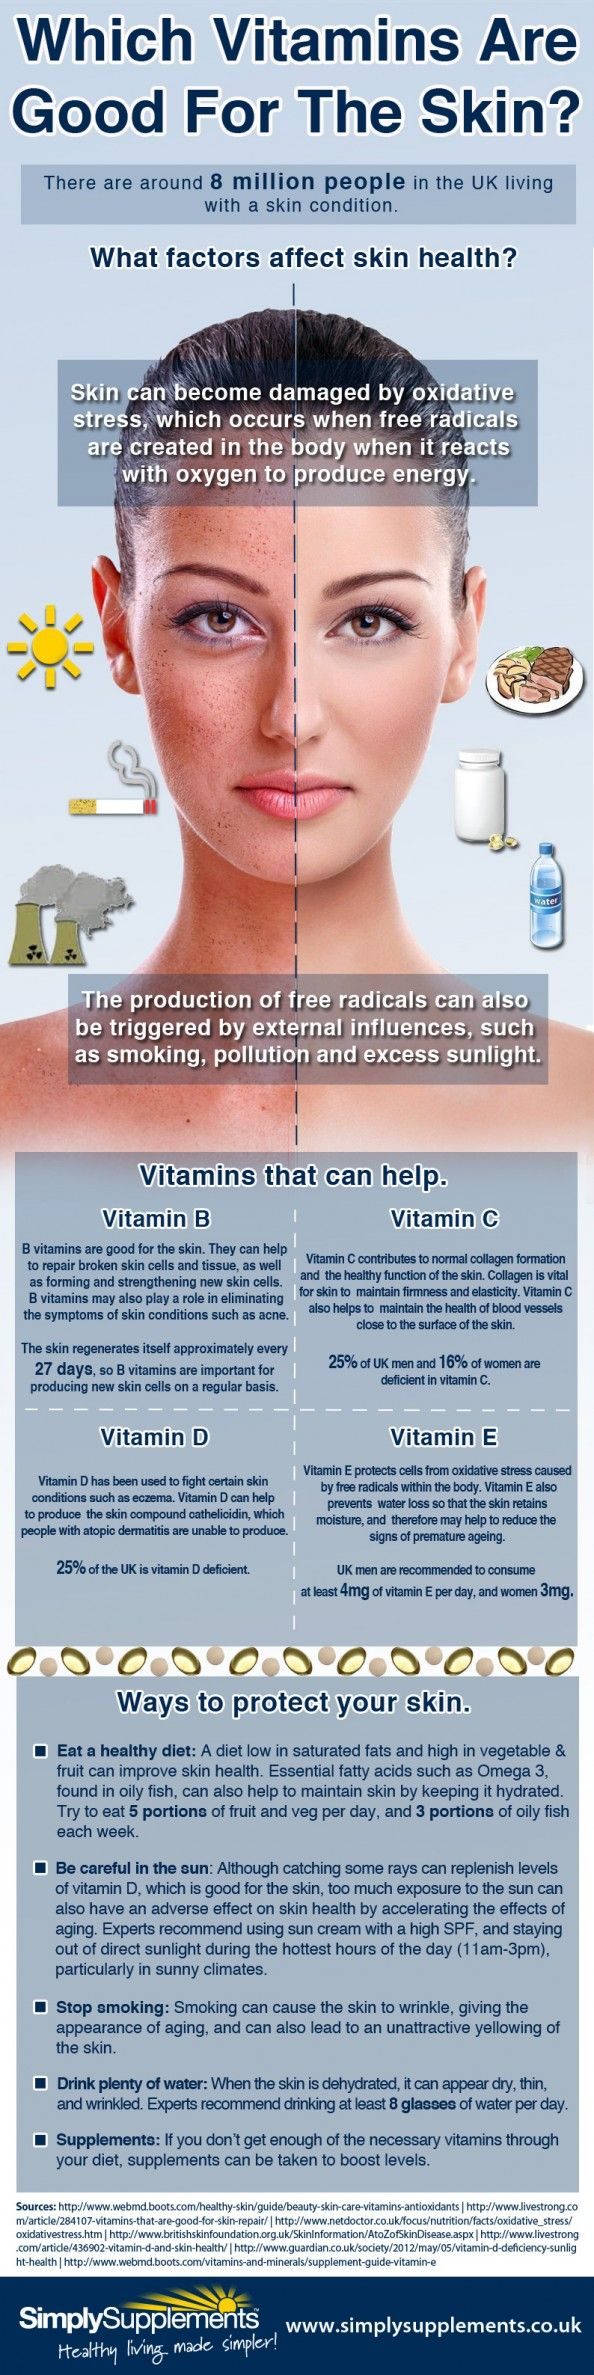 Which vitamins are good for the skin? Infographic